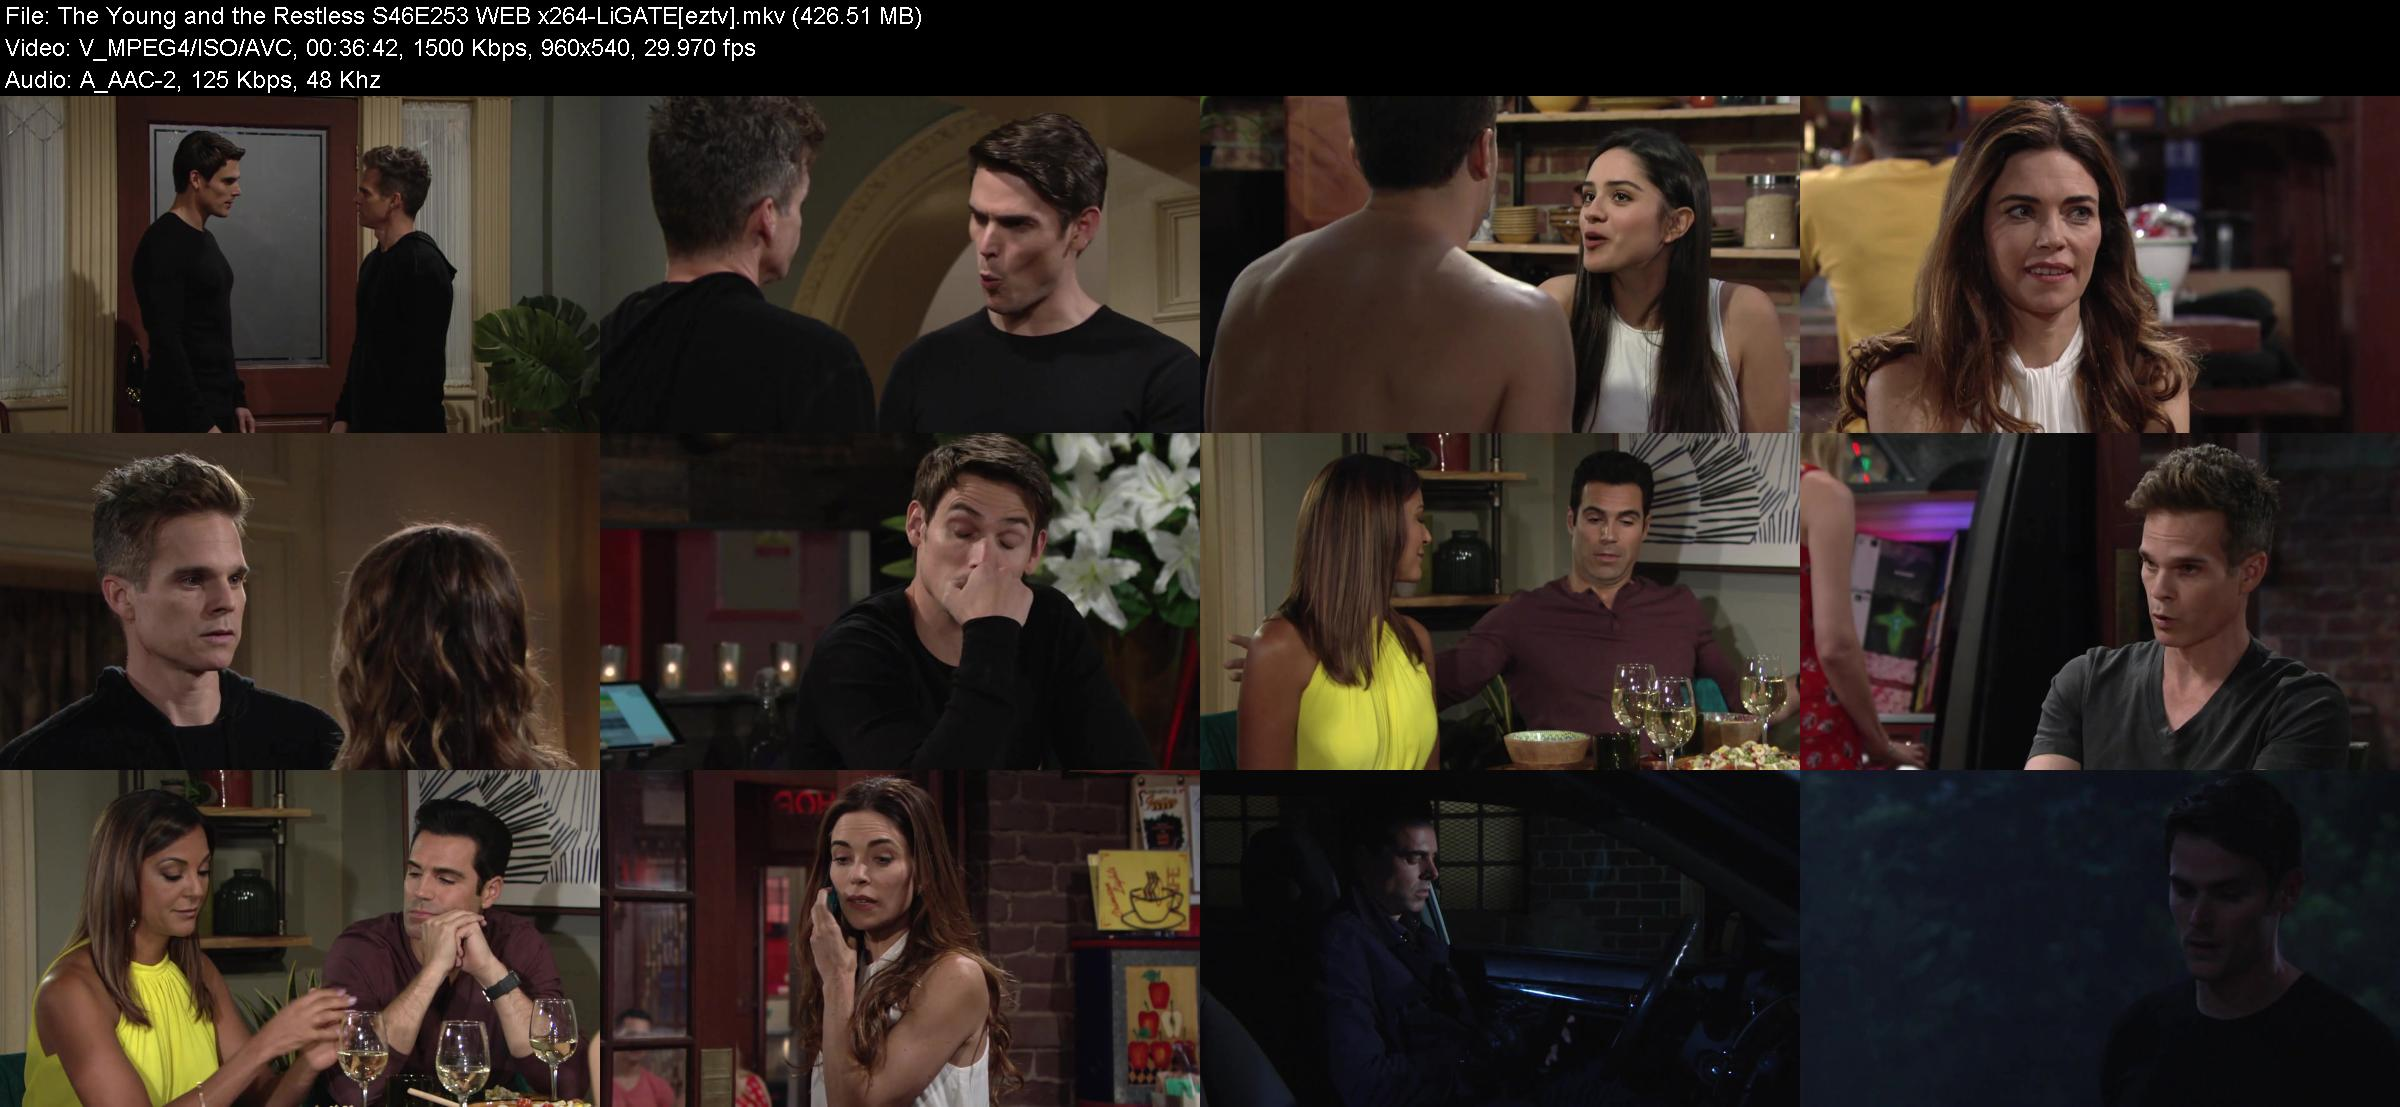 The Young and the Restless S46E253 WEB x264-LiGATE